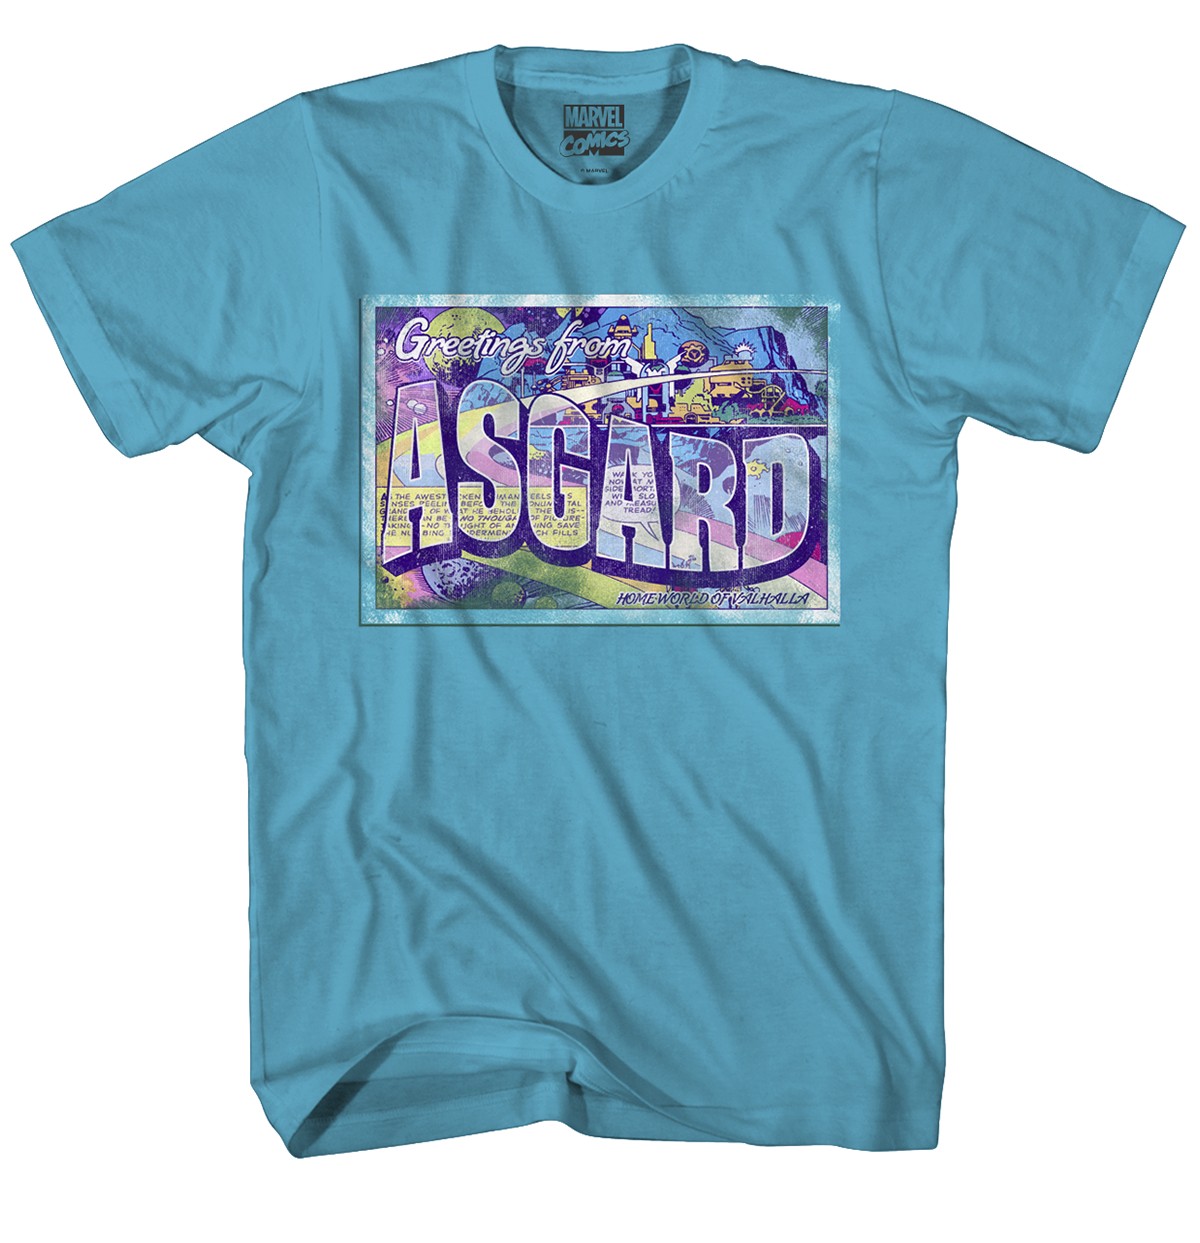 THOR GREETINGS FROM ASGARD TURQ T/S XL